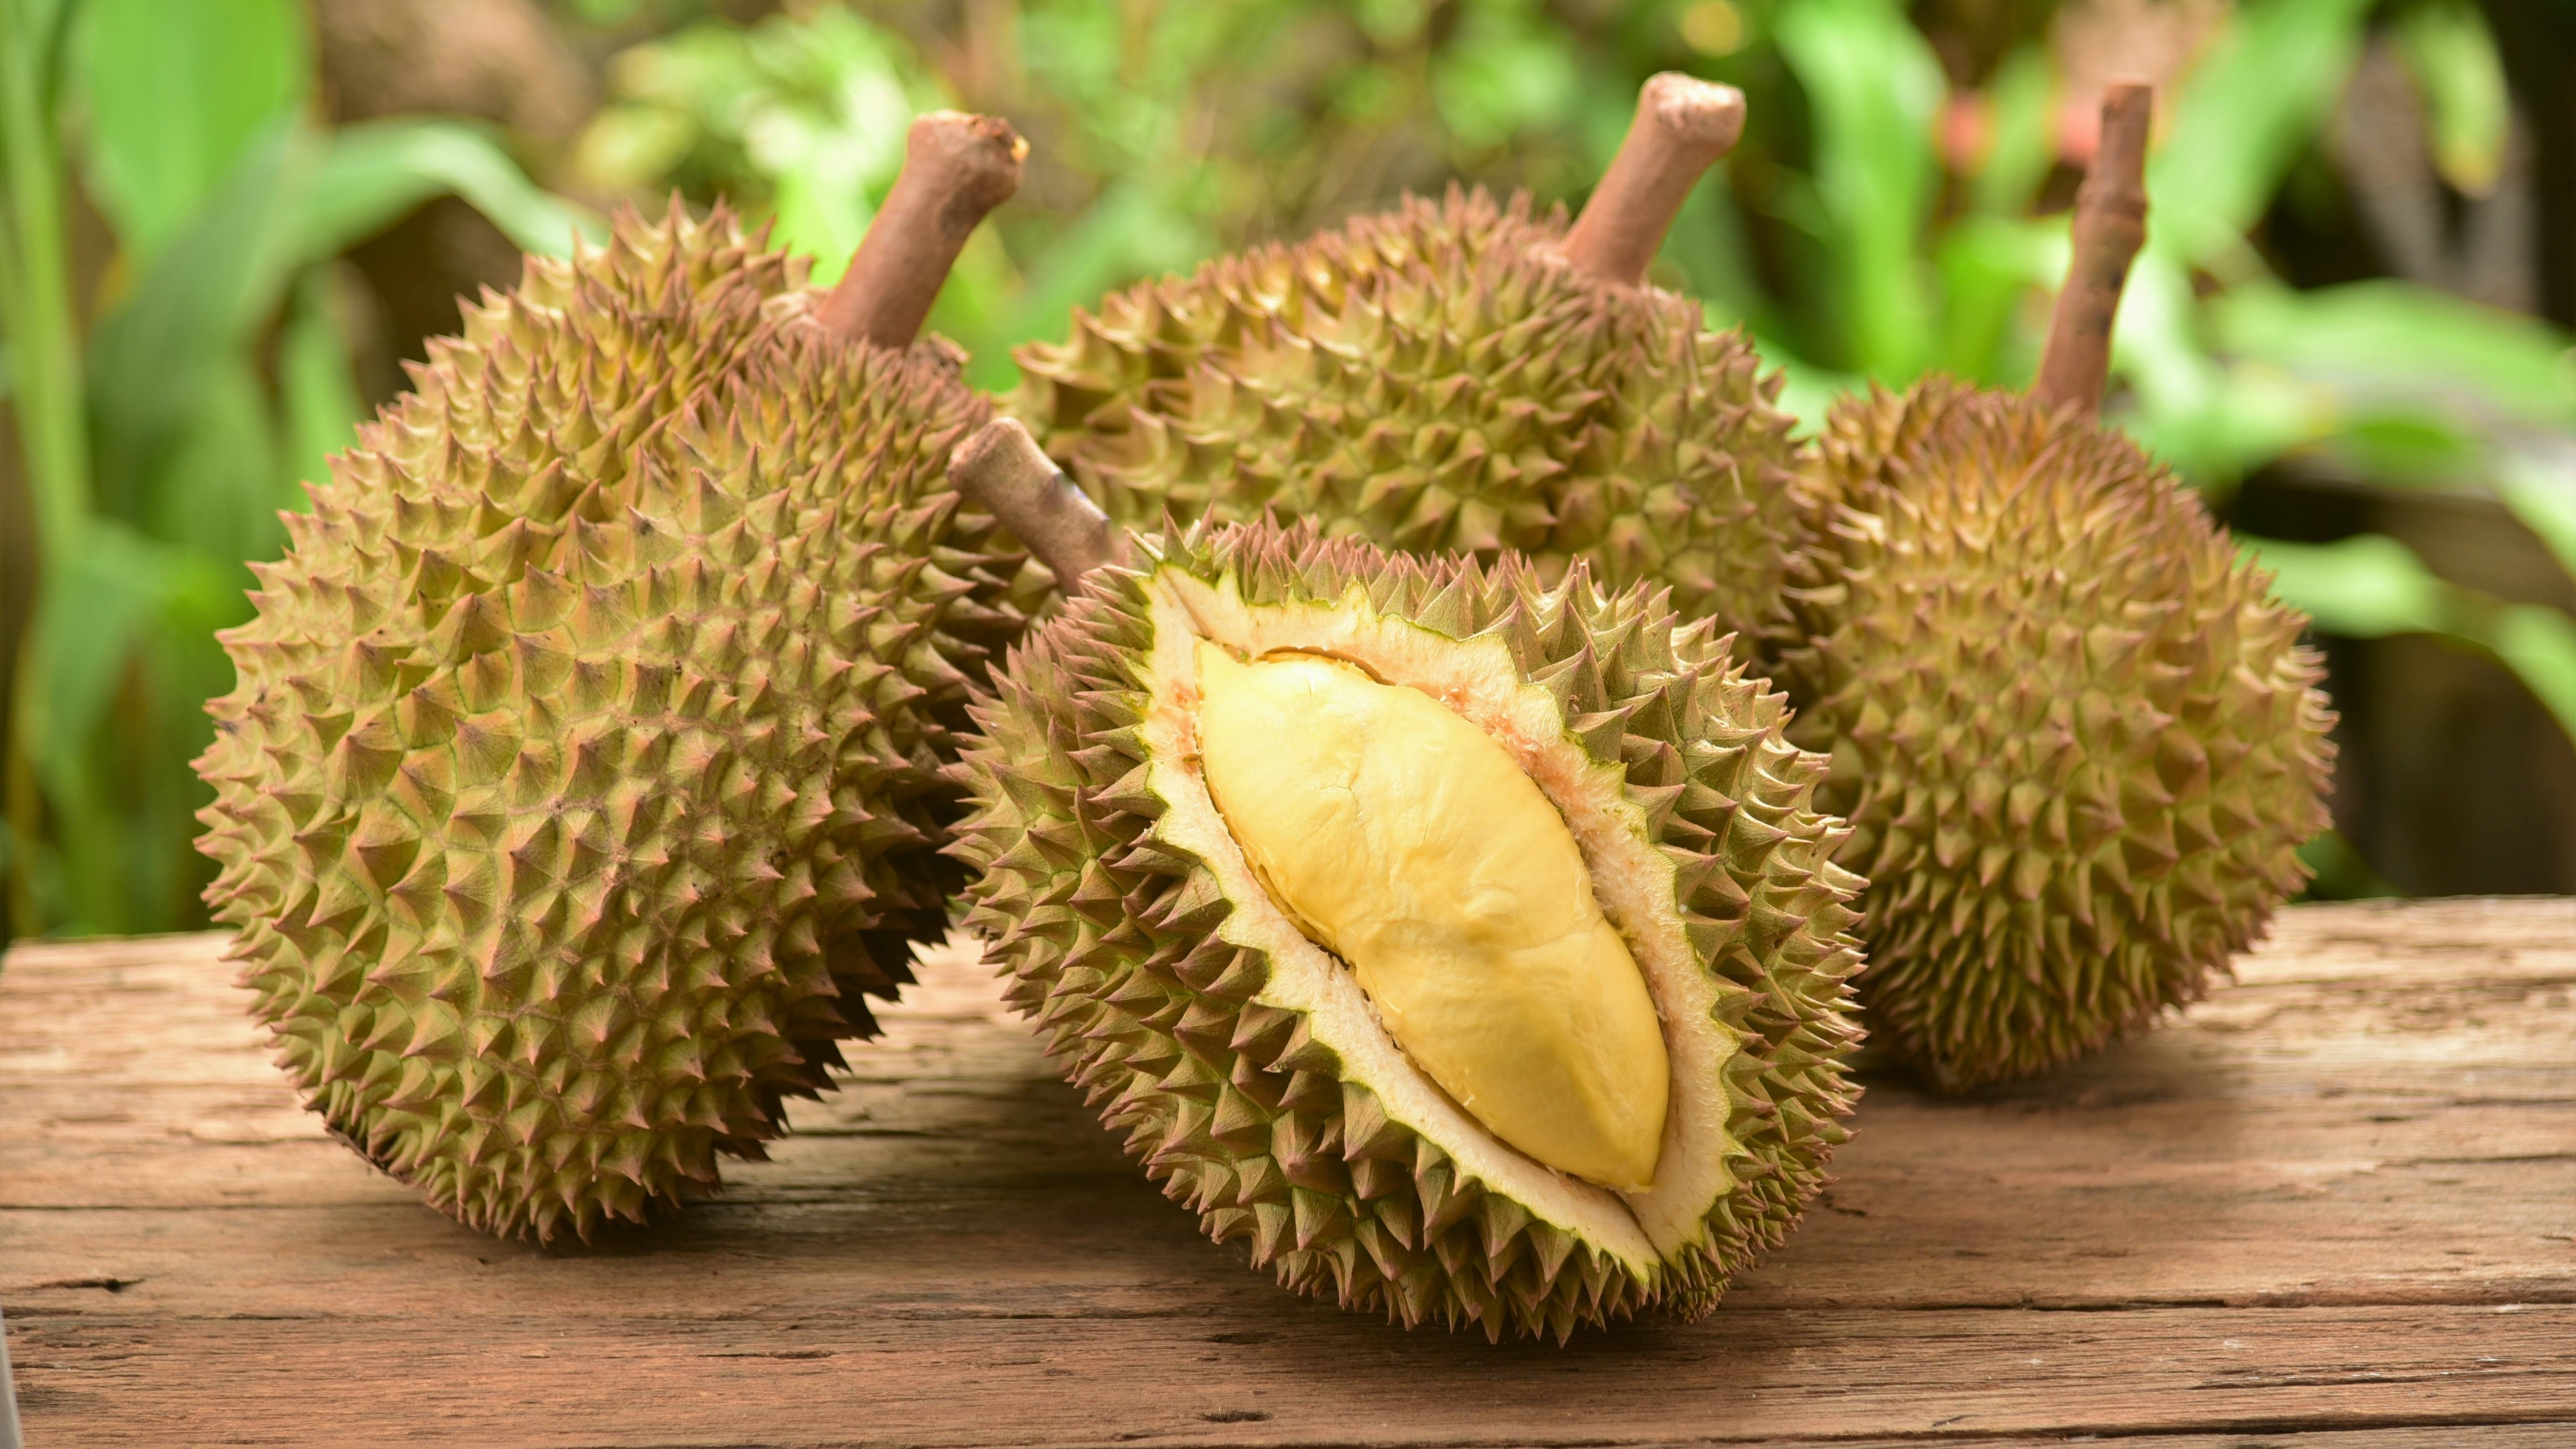 http://fruit-island.ru/images/upload/durian-3840x2160-durian-15342.jpg